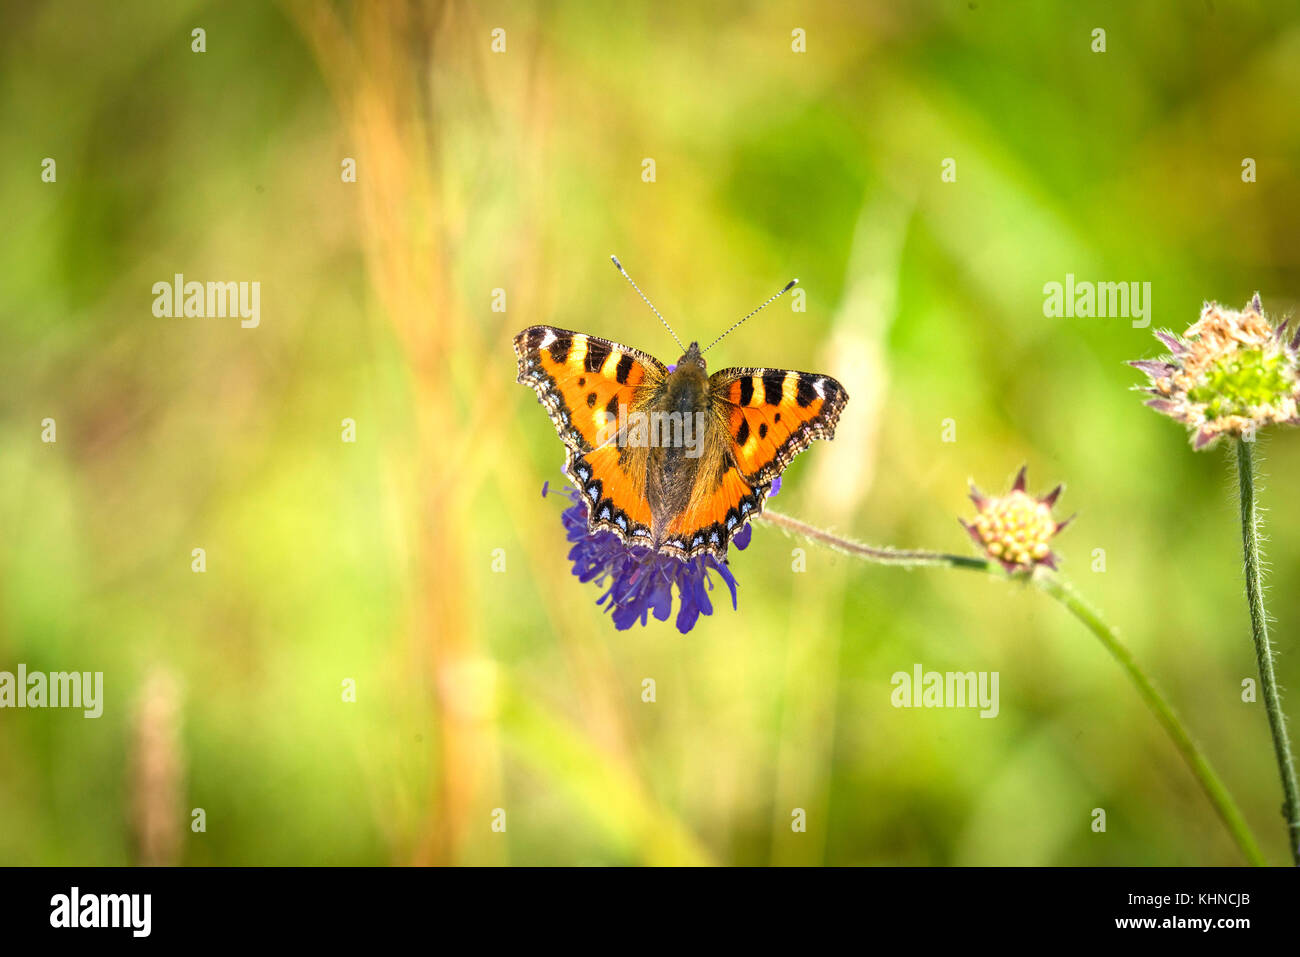 Colorful tortoiseshell butterfly on a purple flower in the summer on a green blurry nature background - Stock Image